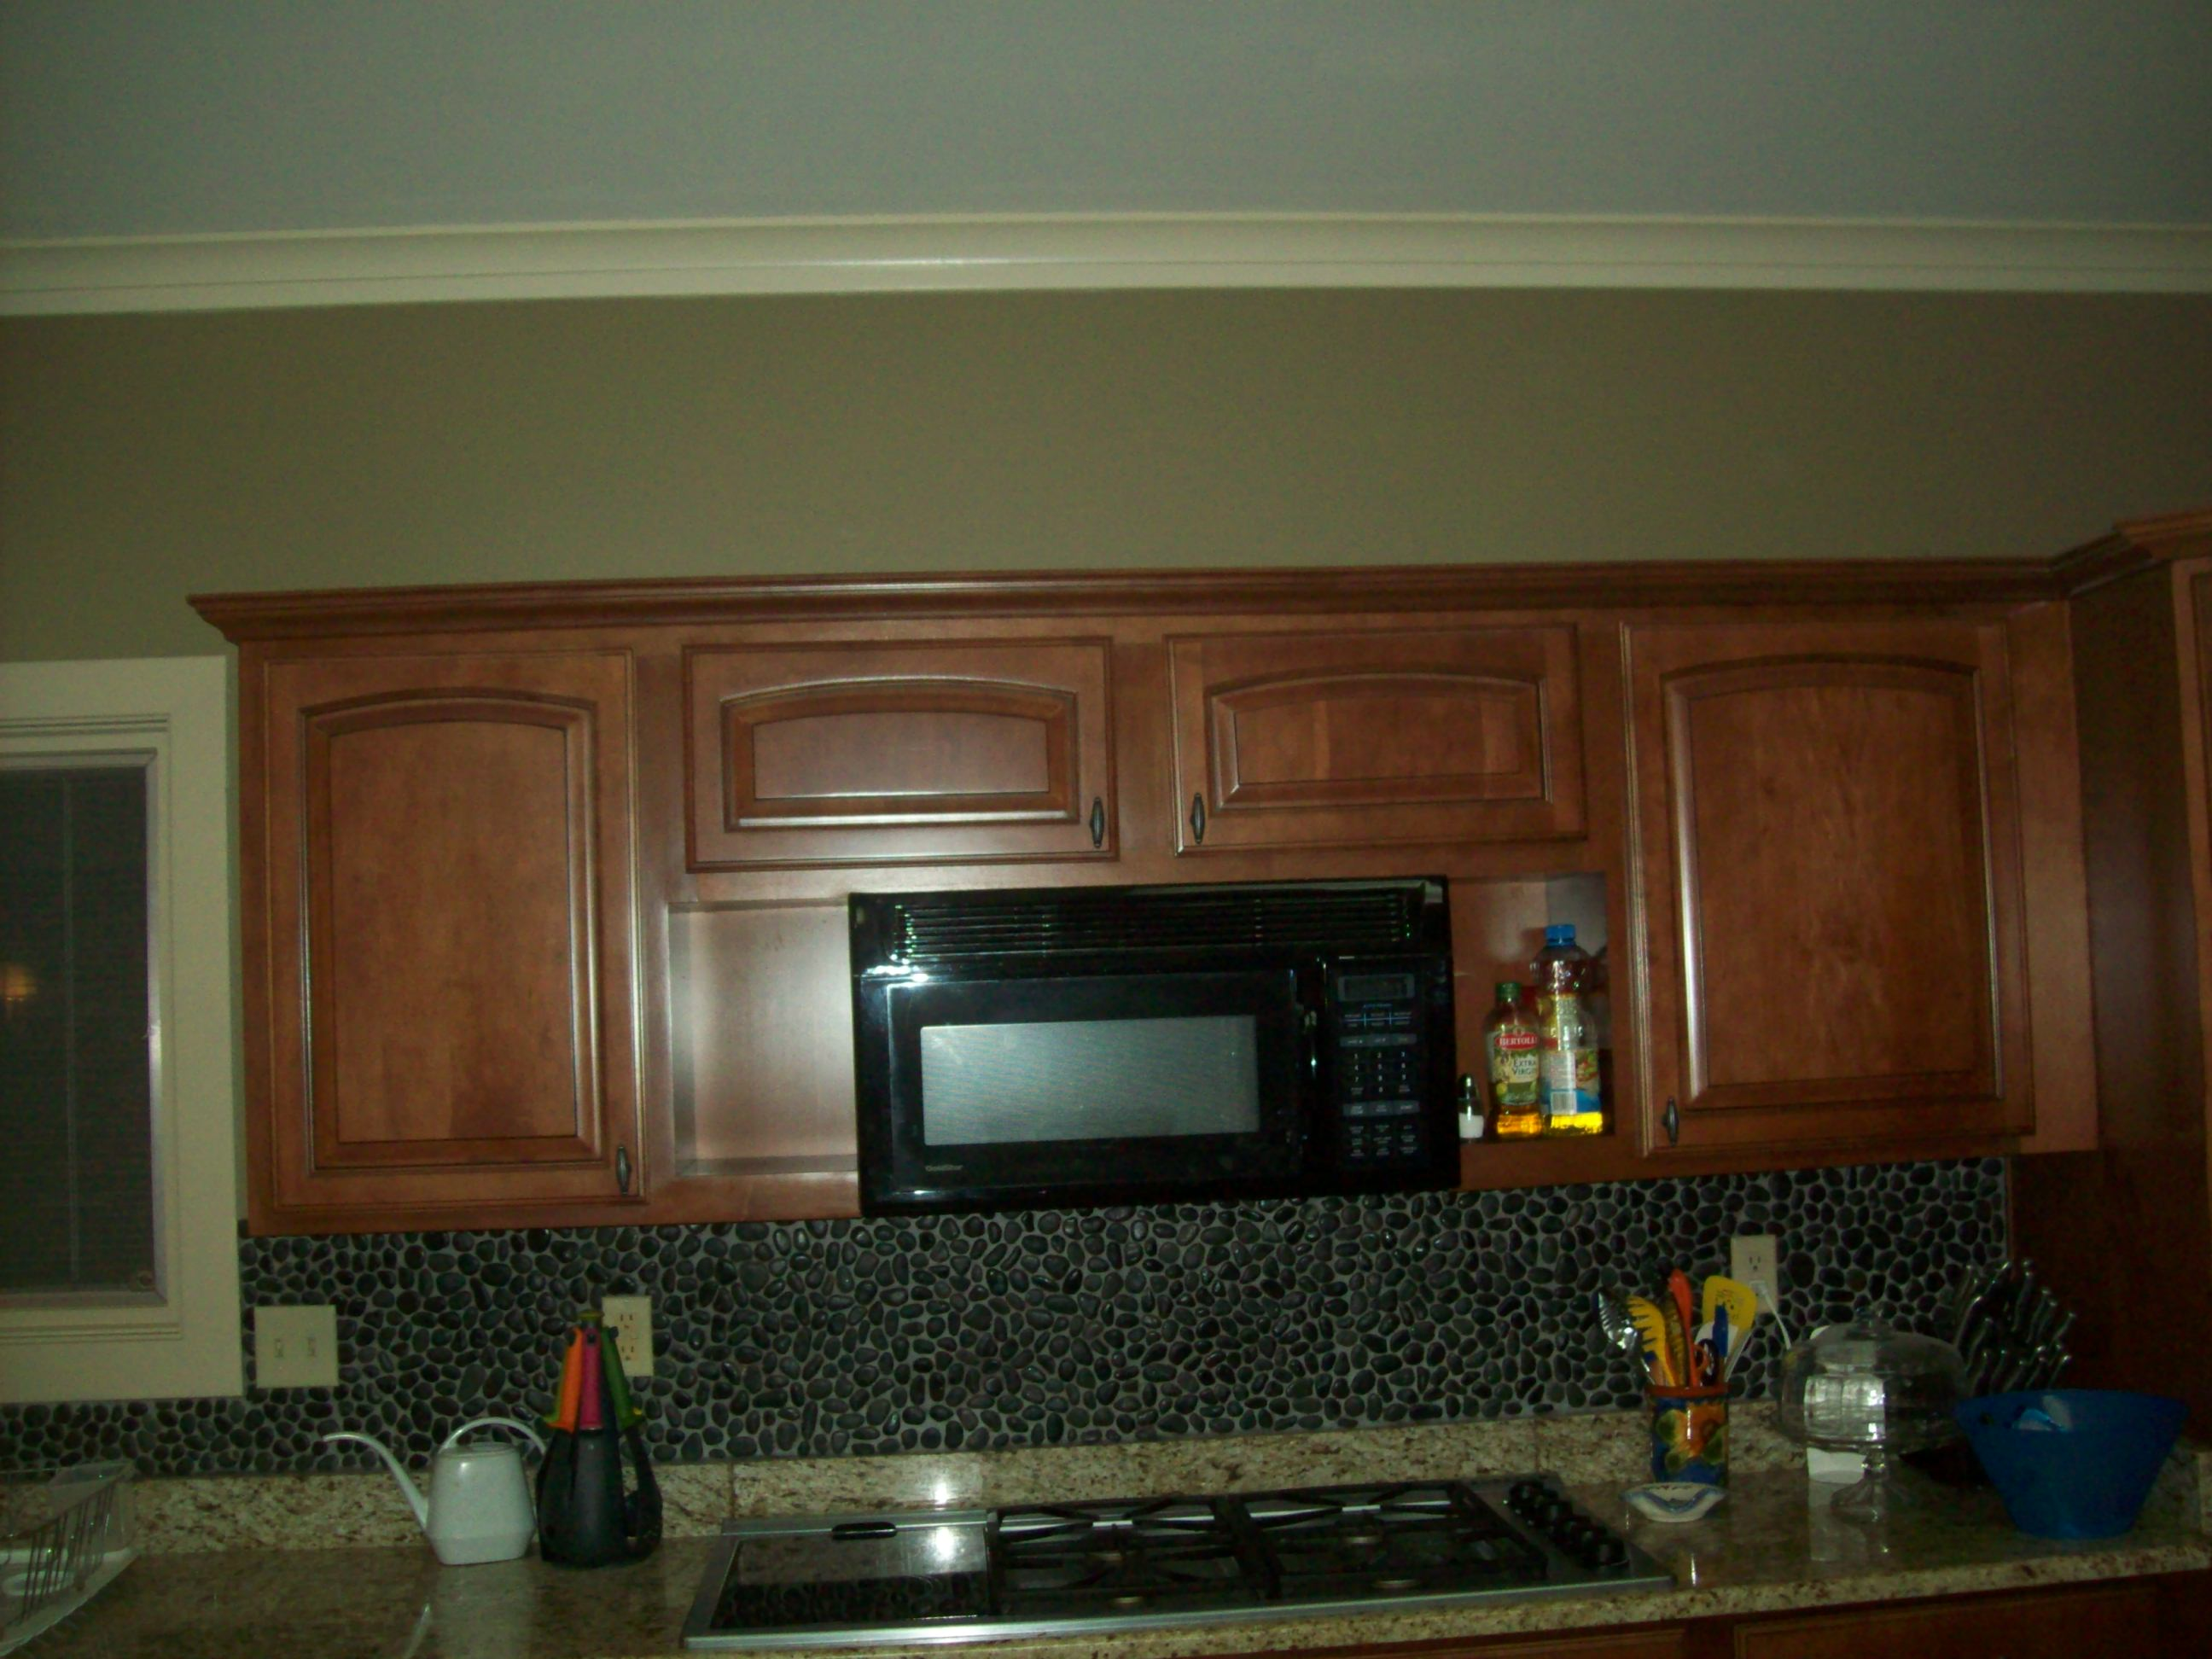 Custom Tile Backsplash & Cabinets